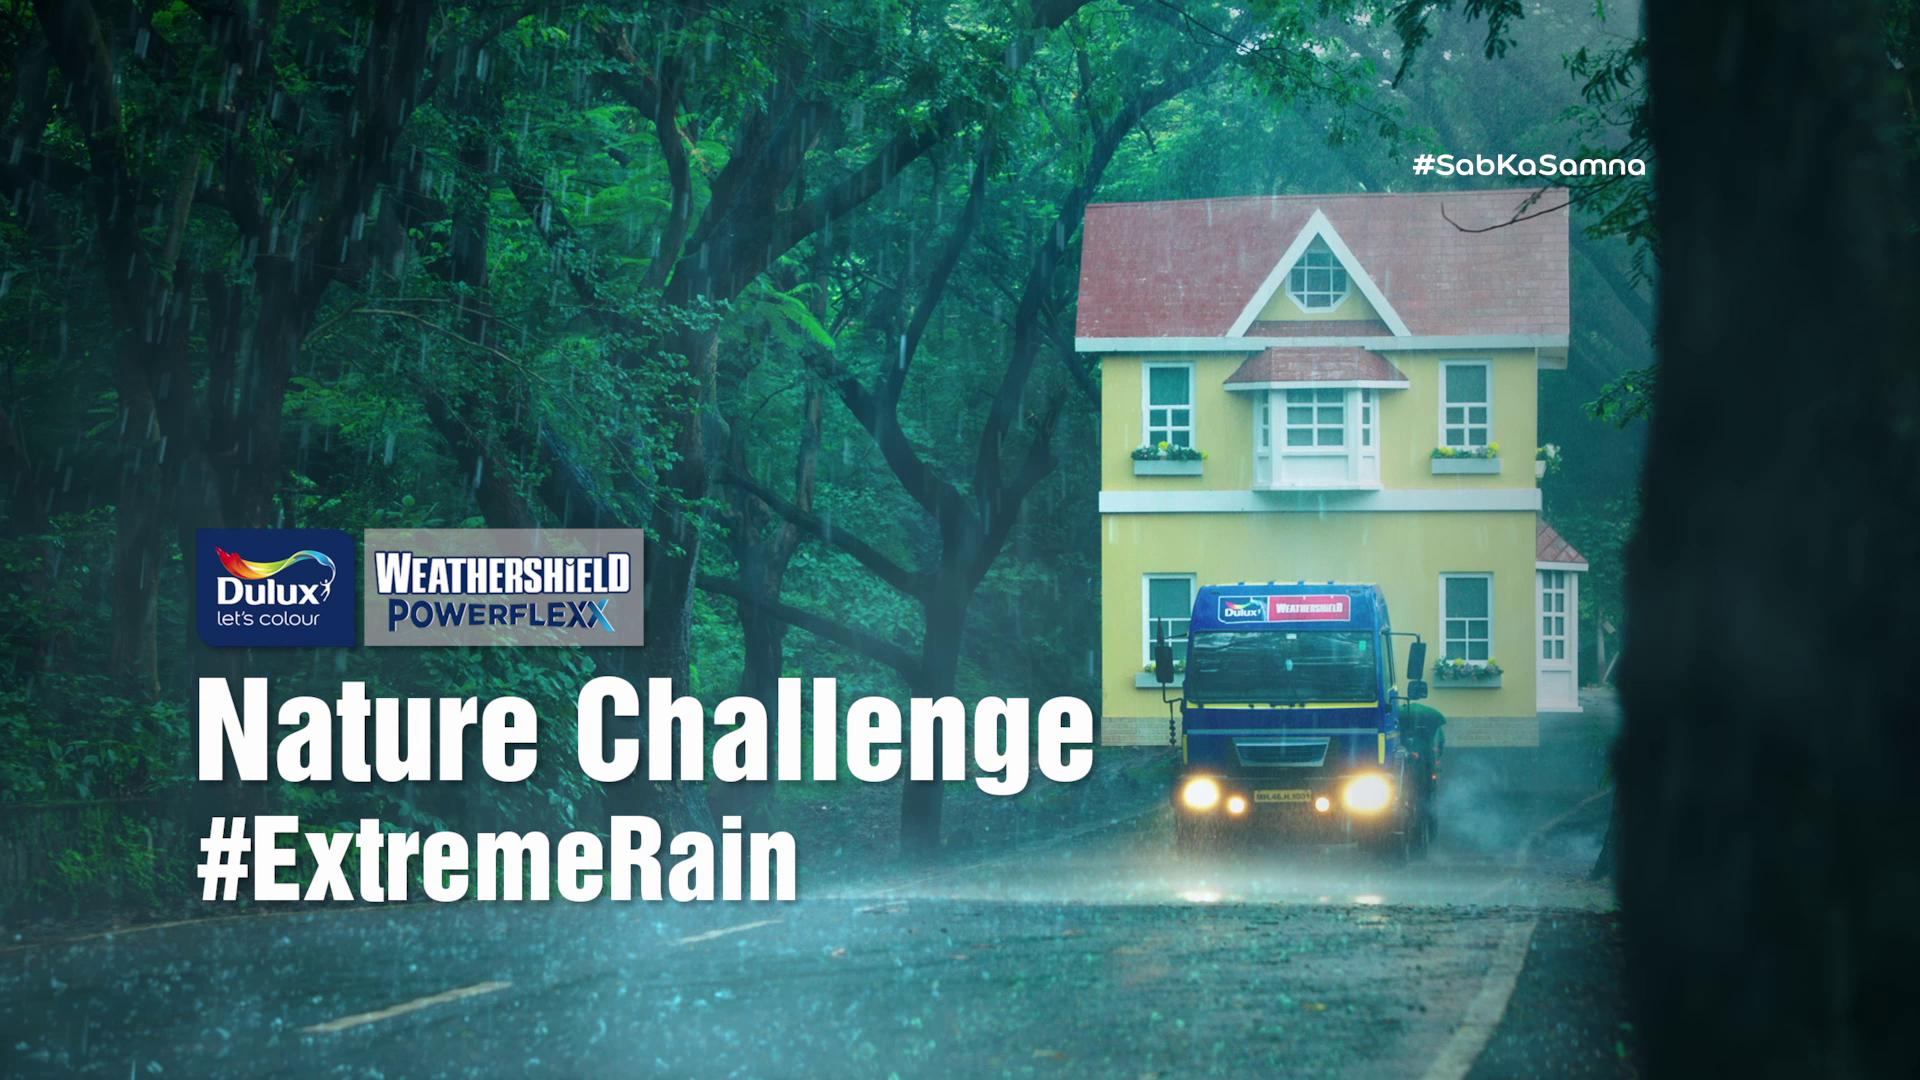 Powerflexx_NatureChallenge_Rain